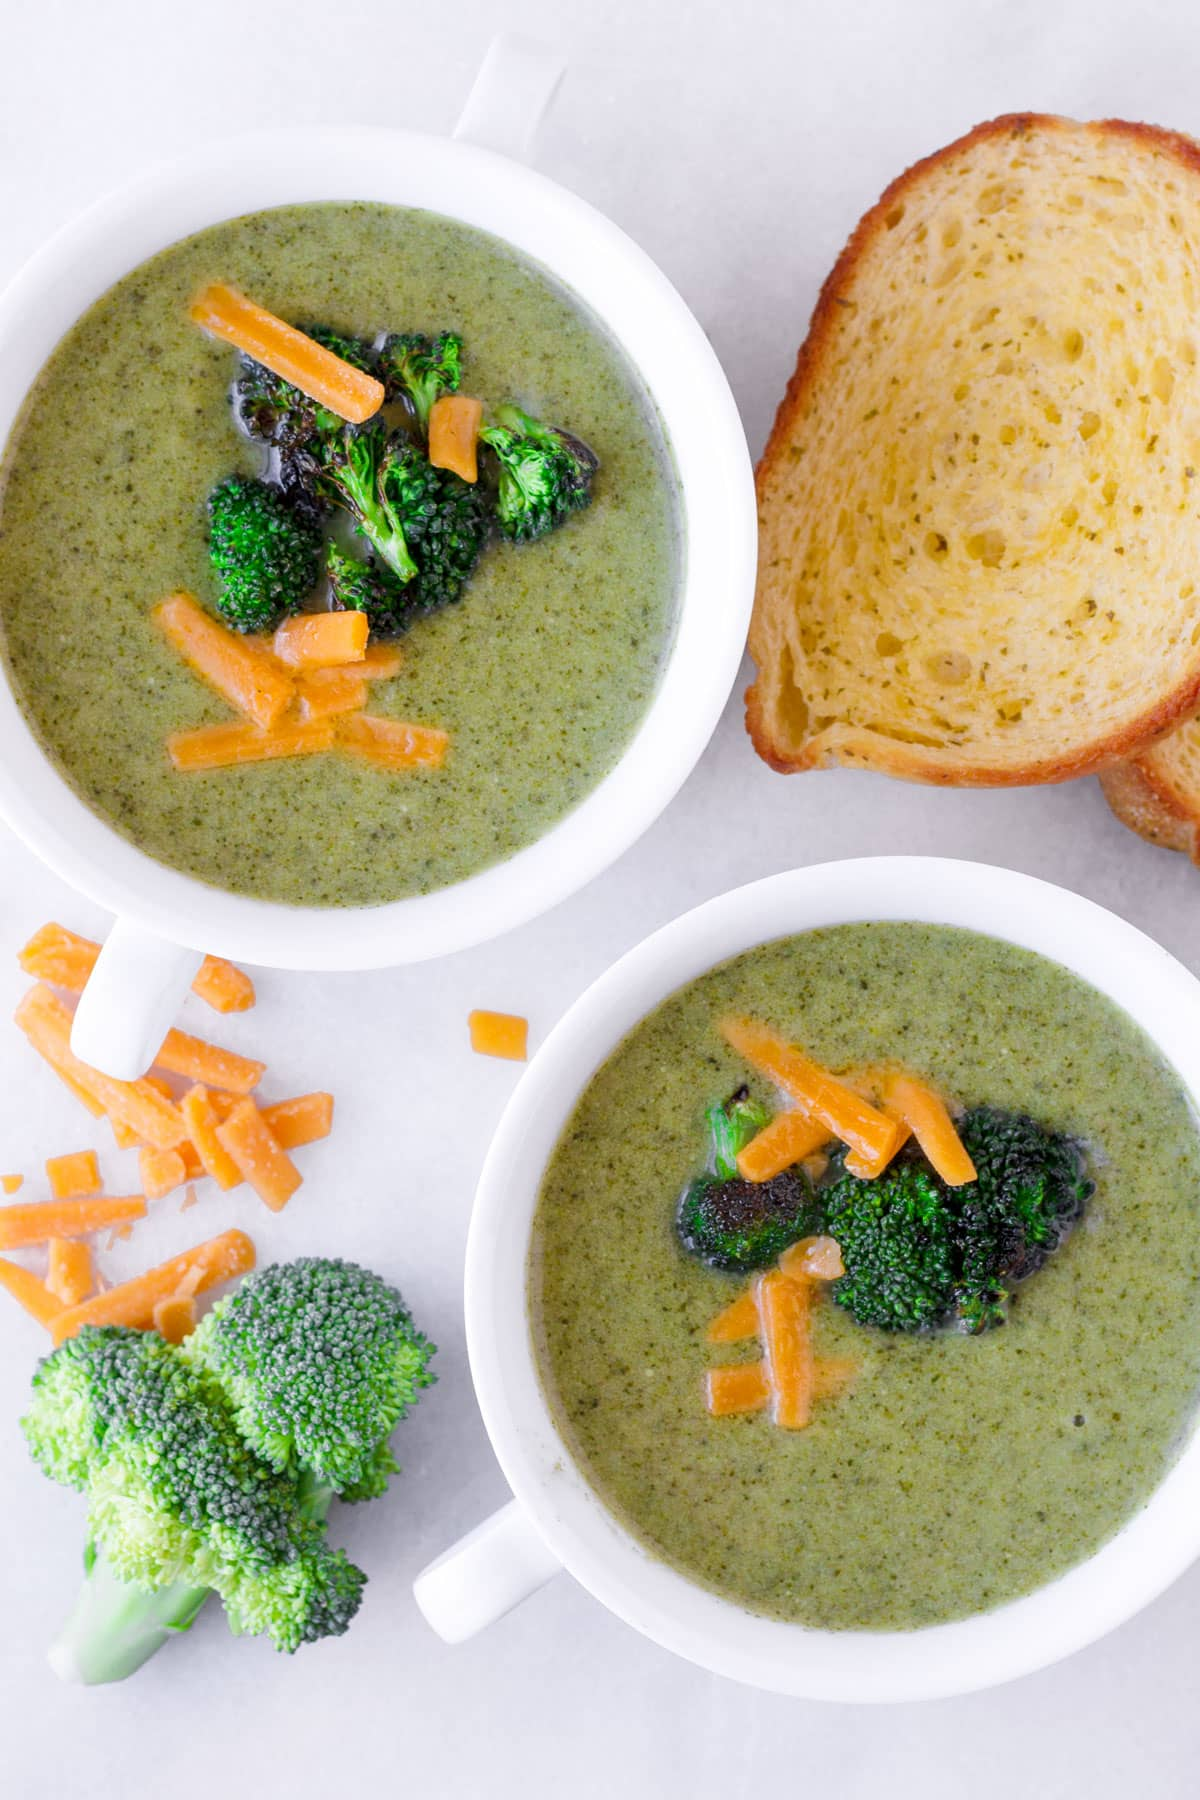 top view of two bowls of creamy vegetable soup